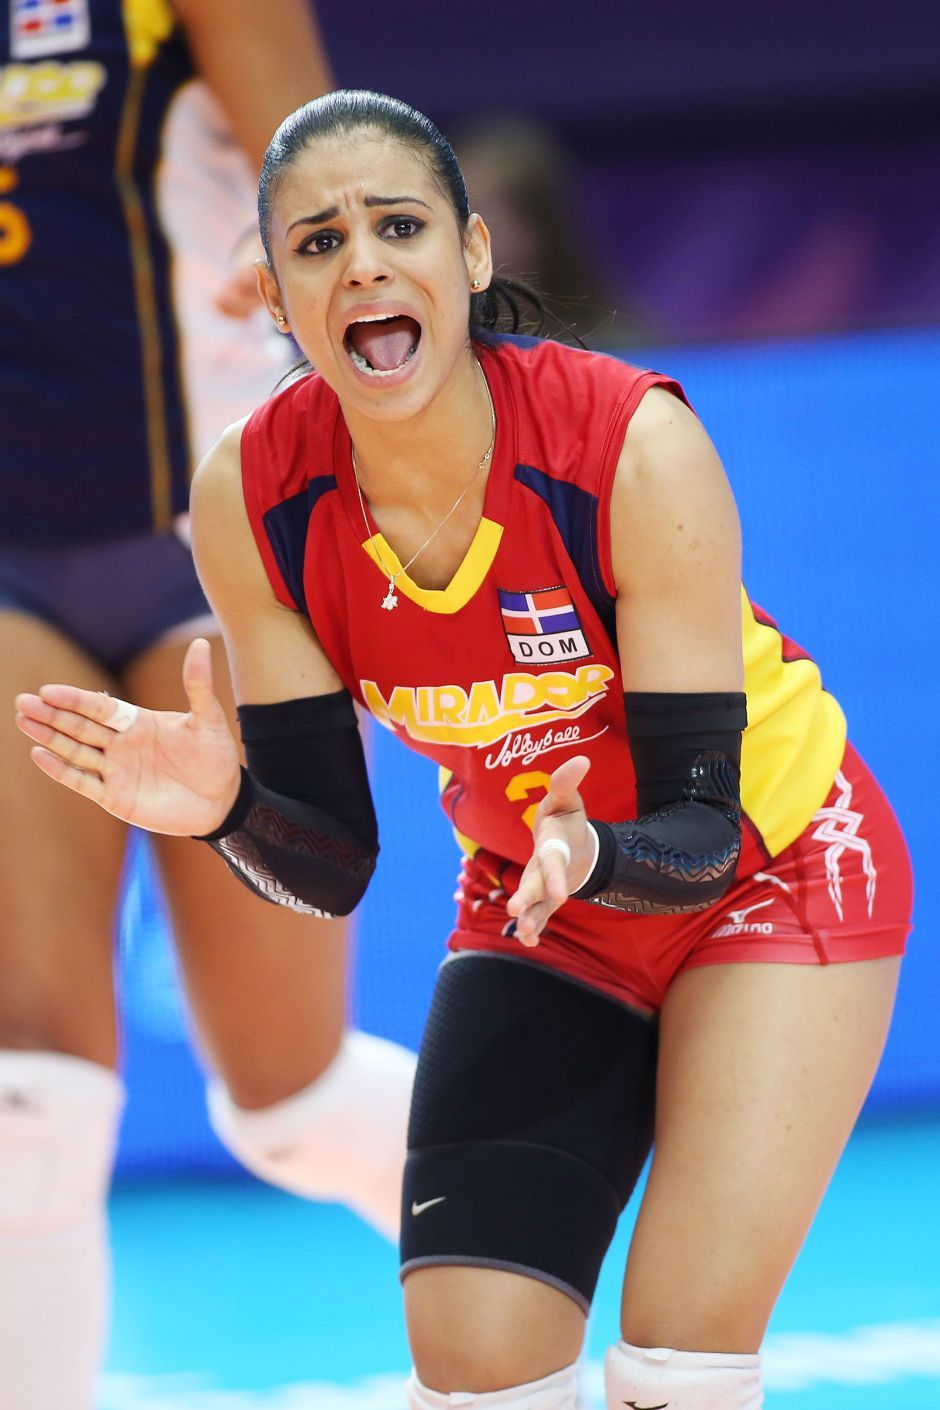 Winifer Fernandez The Volleyball Player Everyone Is Talking About Right Now In 2020 Winifer Fernandez Volleyball Players Female Volleyball Players